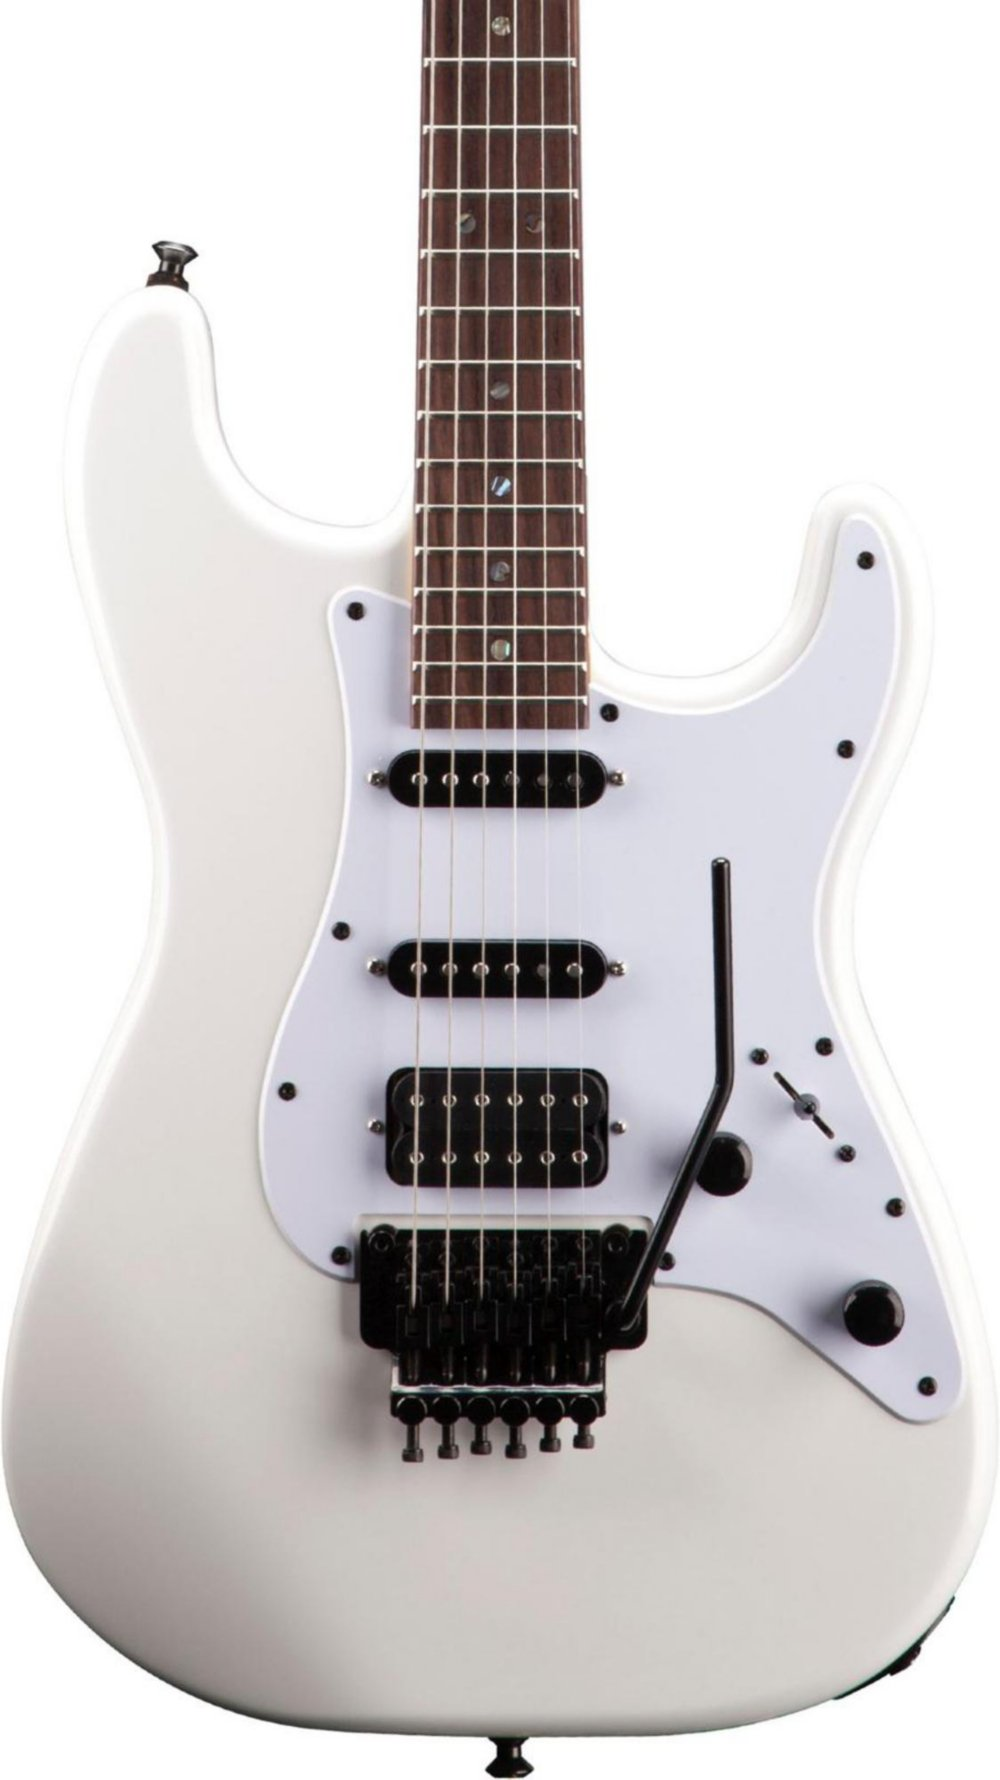 Cheap Jackson Adrian Smith Signature SDX Snow White 6-String Electric Guitar w/ Maple Fingerboard Black Friday & Cyber Monday 2019